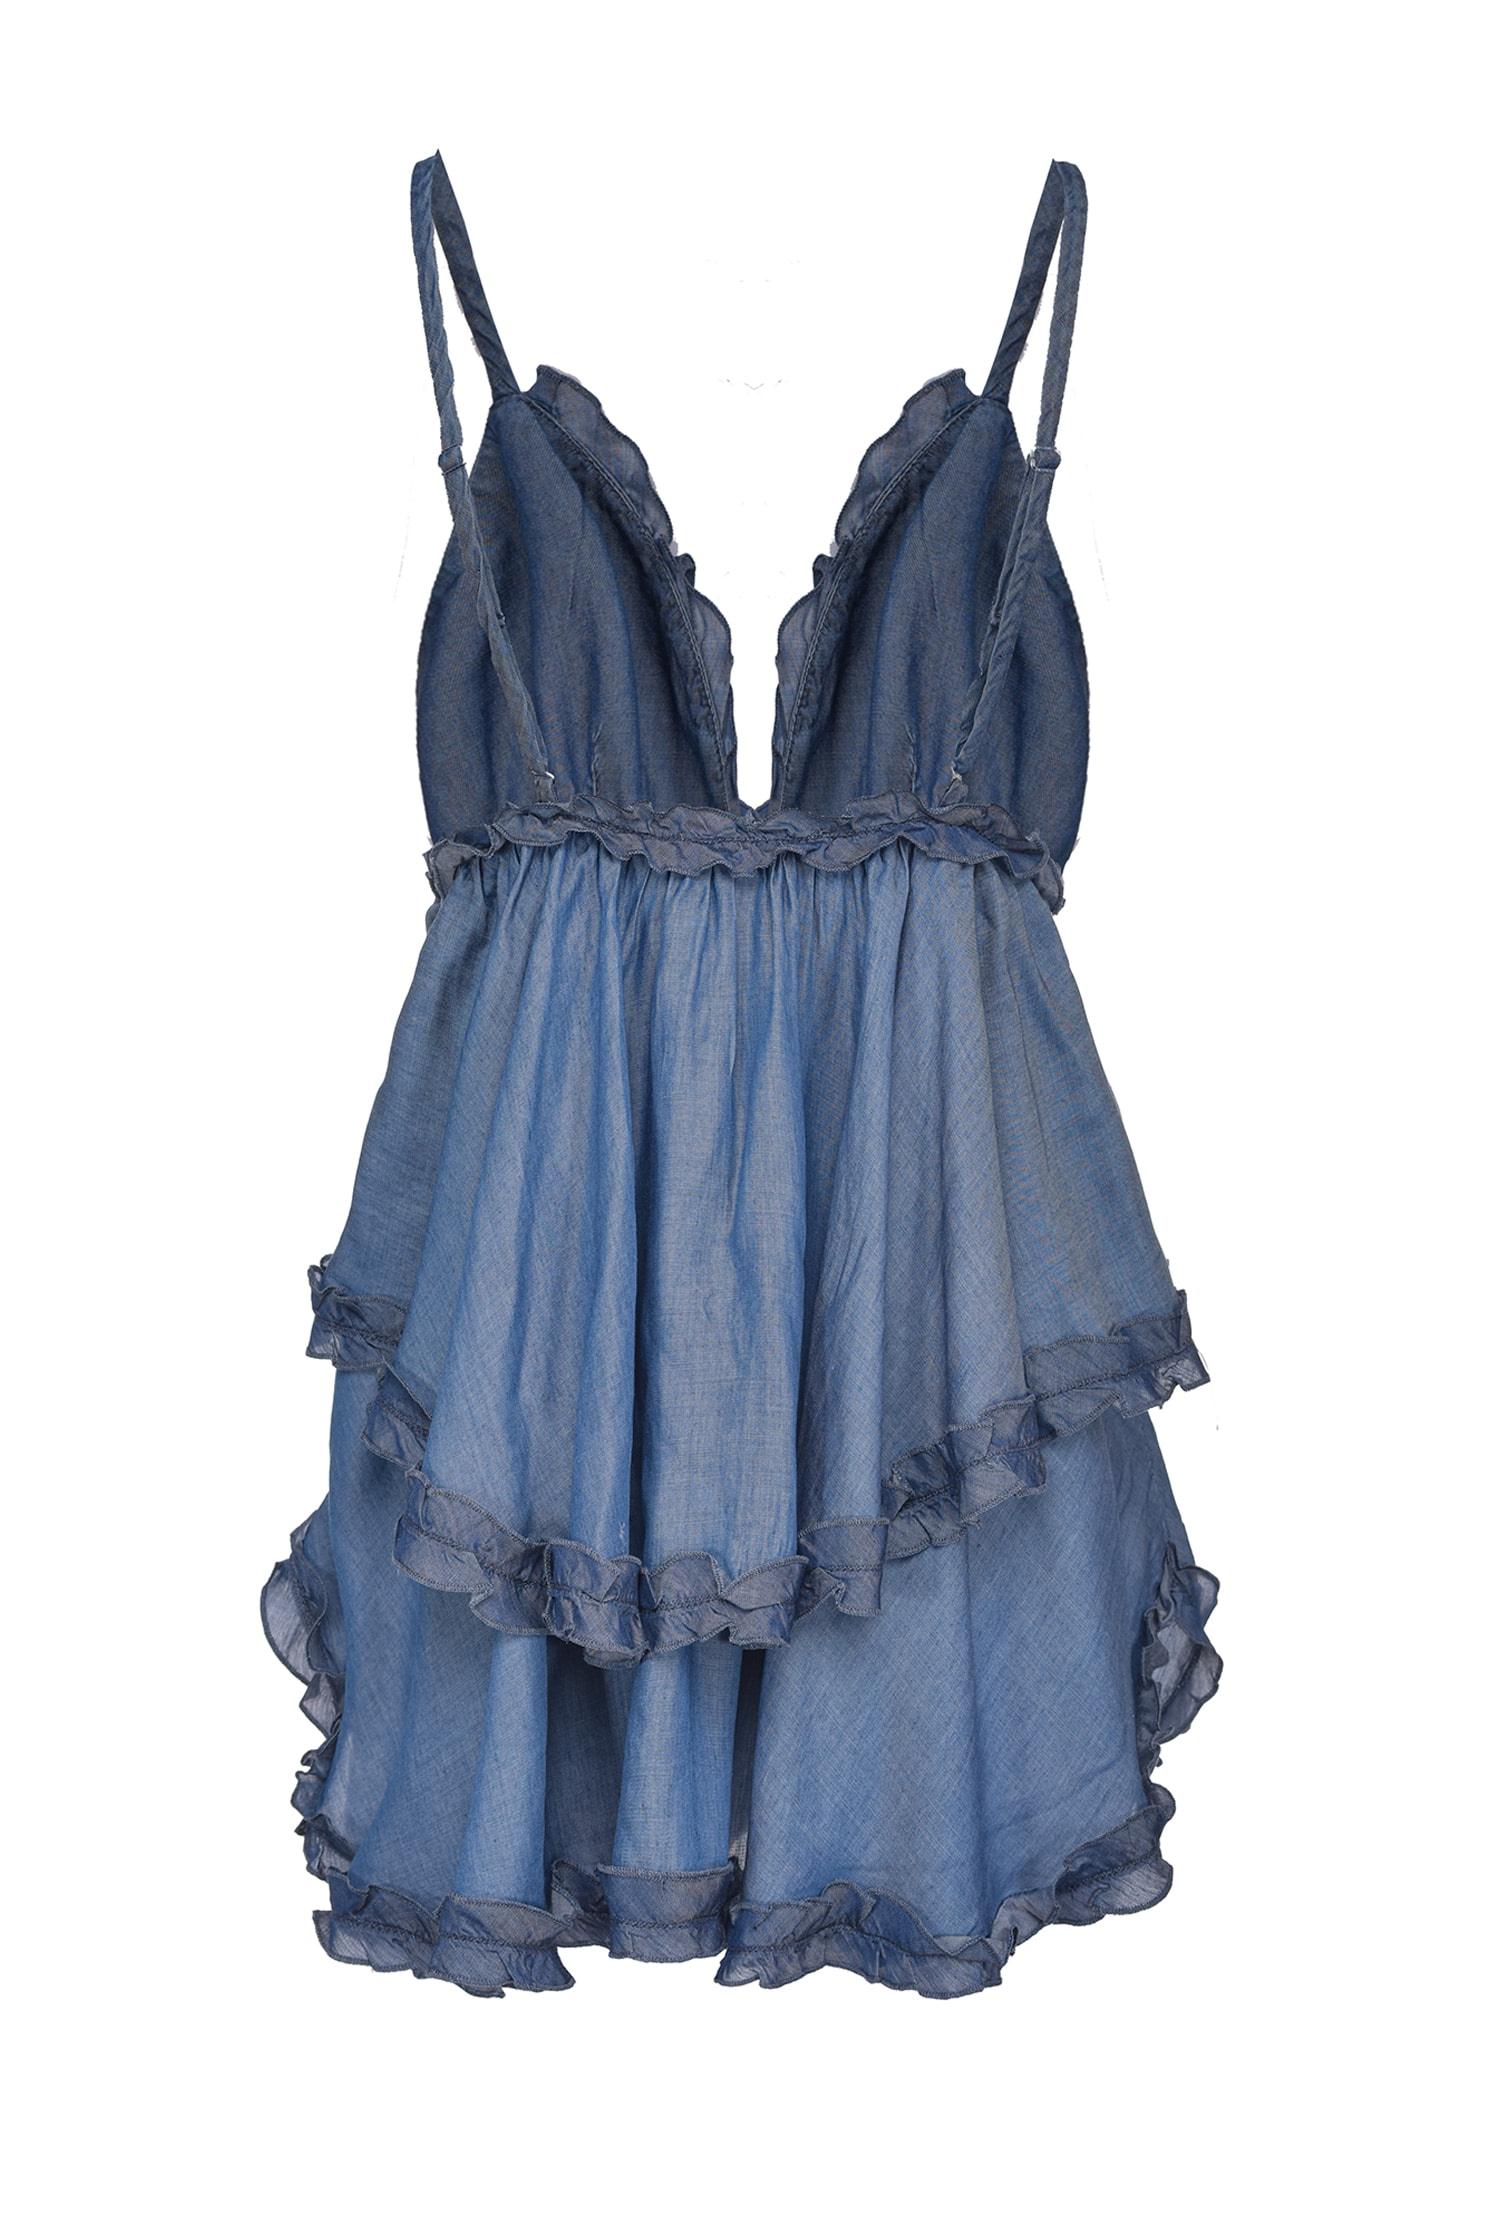 SHOPPING ON LINE PINKO TOP LINGERIE IN DENIM LYOCELL DIANA NEW COLLECTION WOMEN'S SPRING SUMMER 2021